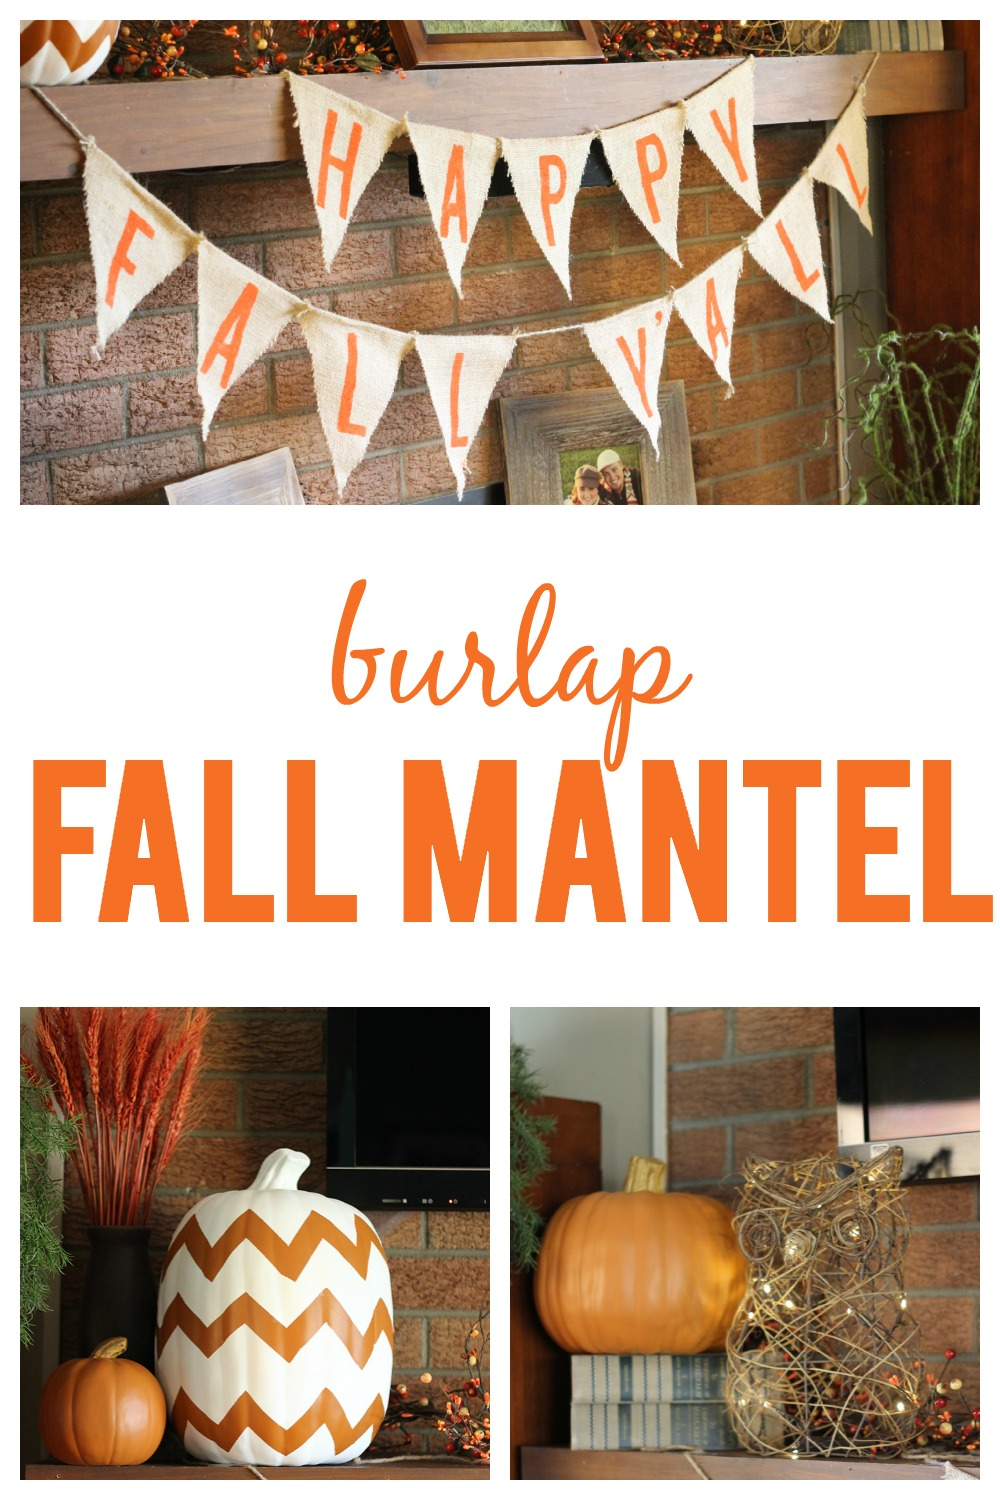 Burlap Fall Mantel